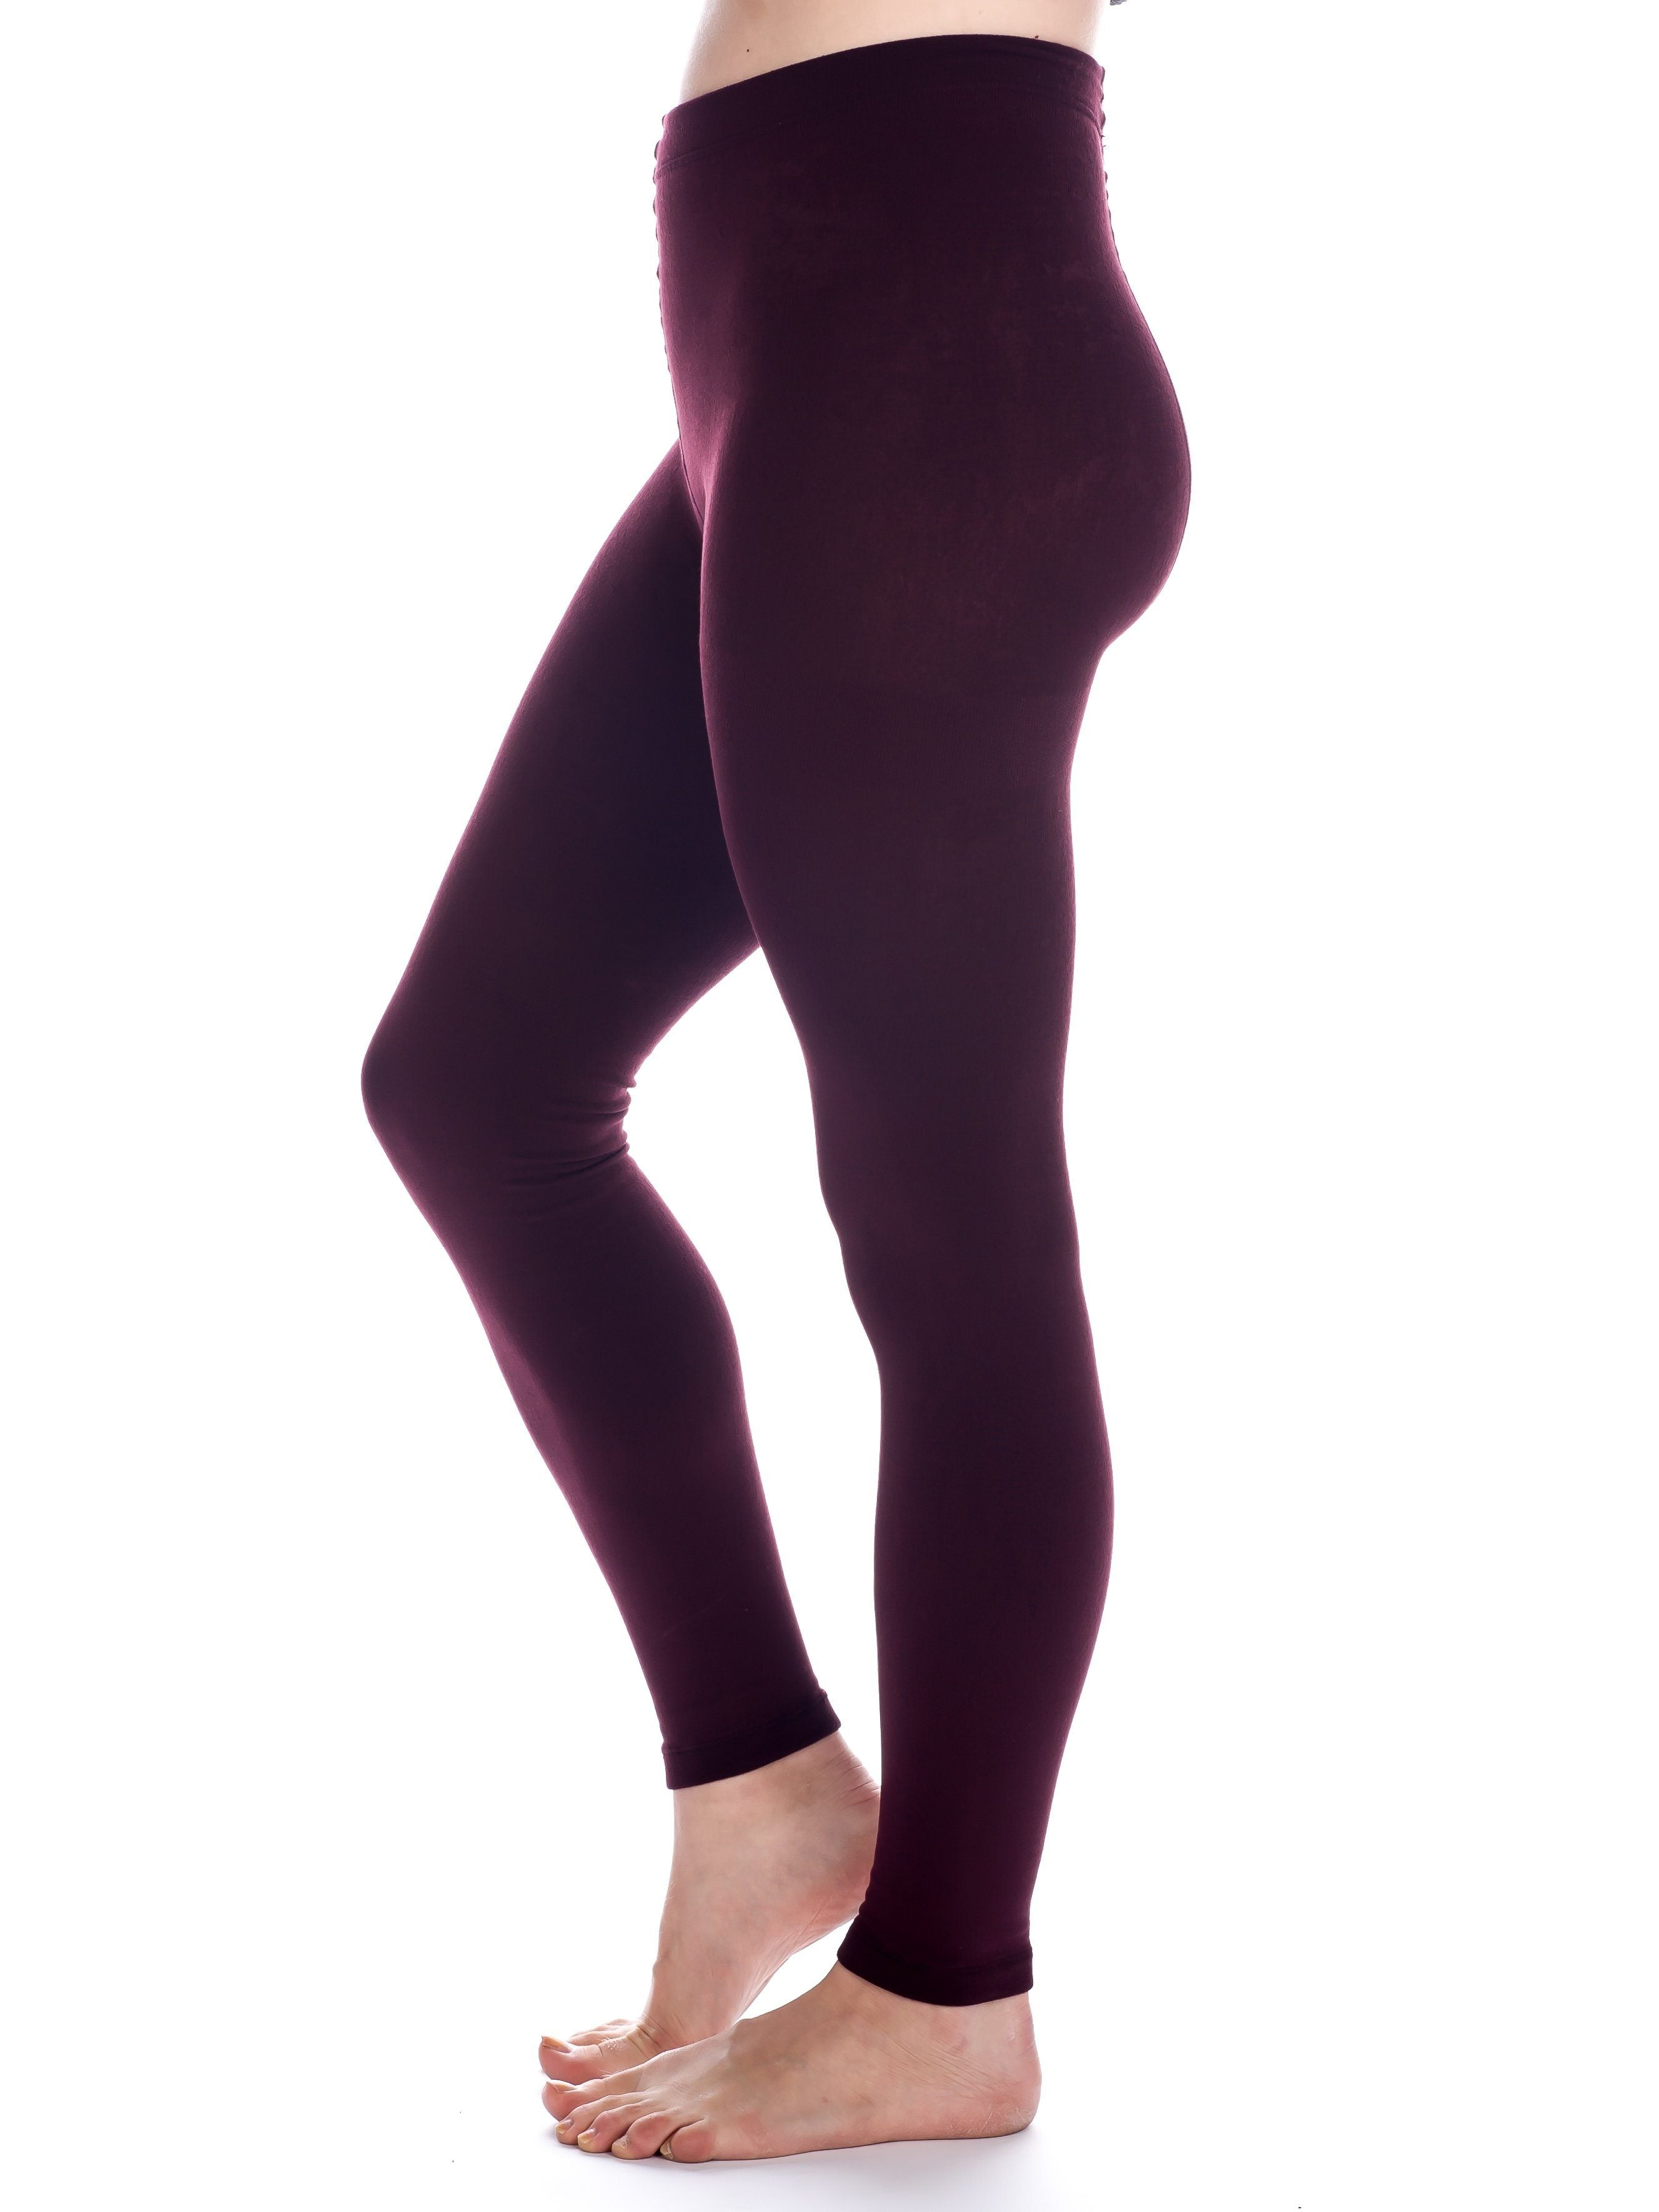 Noble Mount Women's Fleece Lined Footless Tights